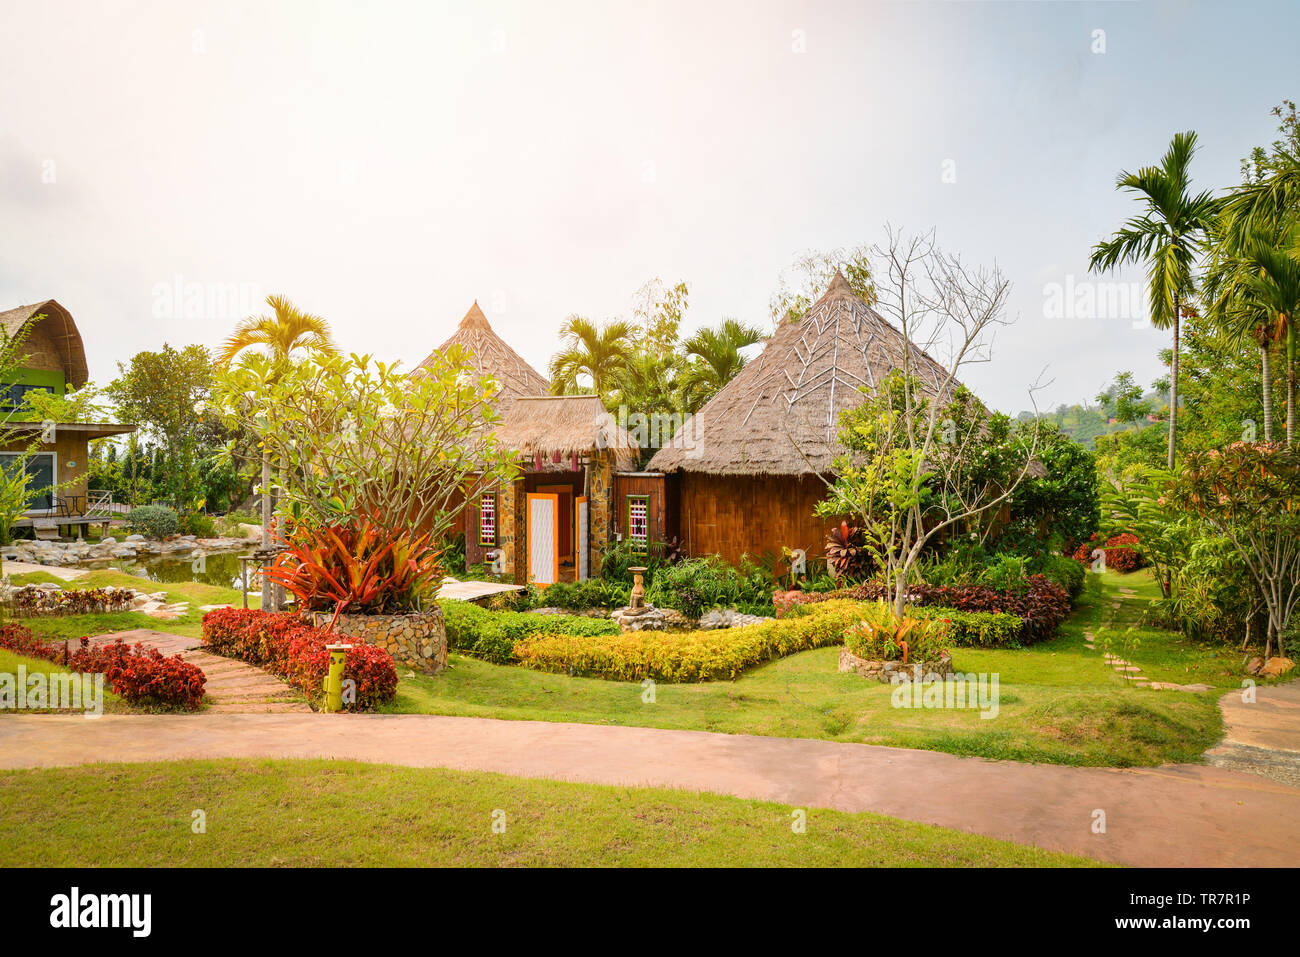 Plant And Flower Tree Decorate On Front Yard With Walkway And Cottage Garden Background Stock Photo Alamy